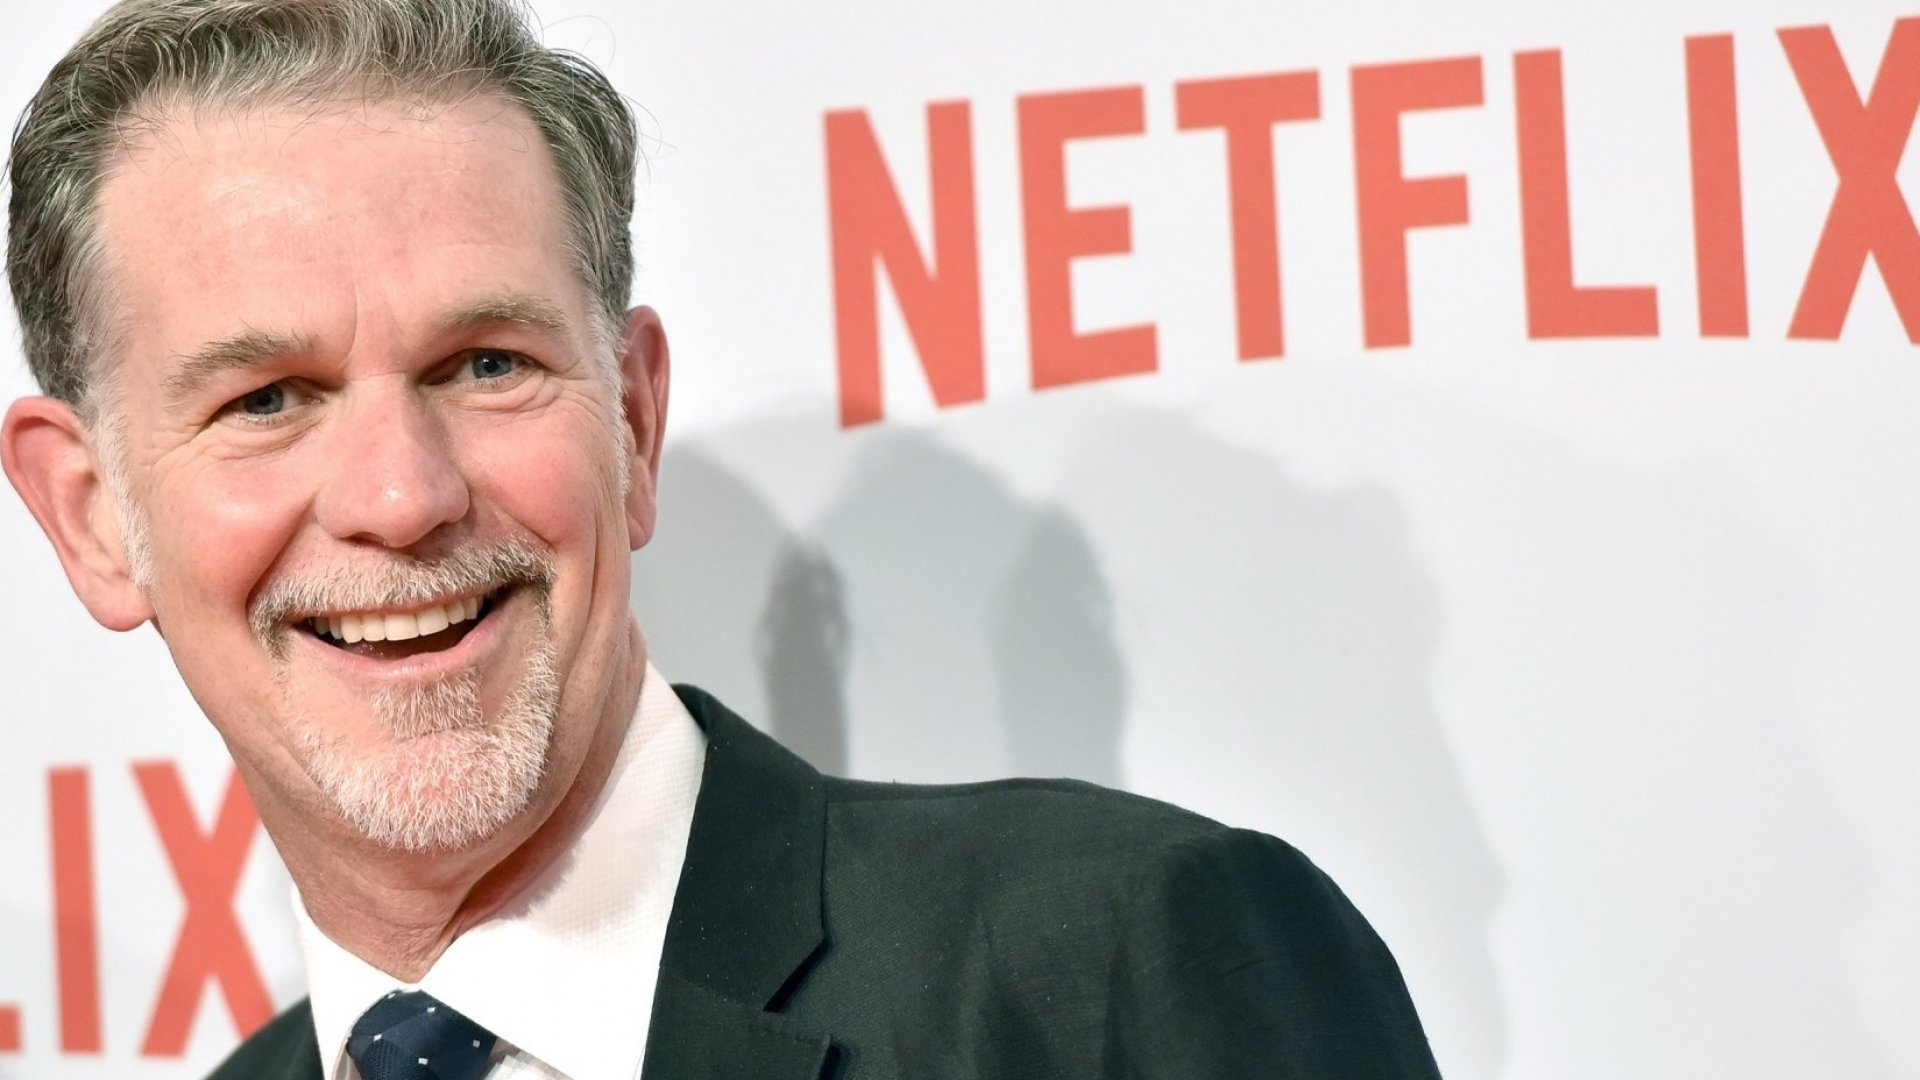 This Brilliant Email From Netflix Was a Master Class in Dealing With a Legal Issue